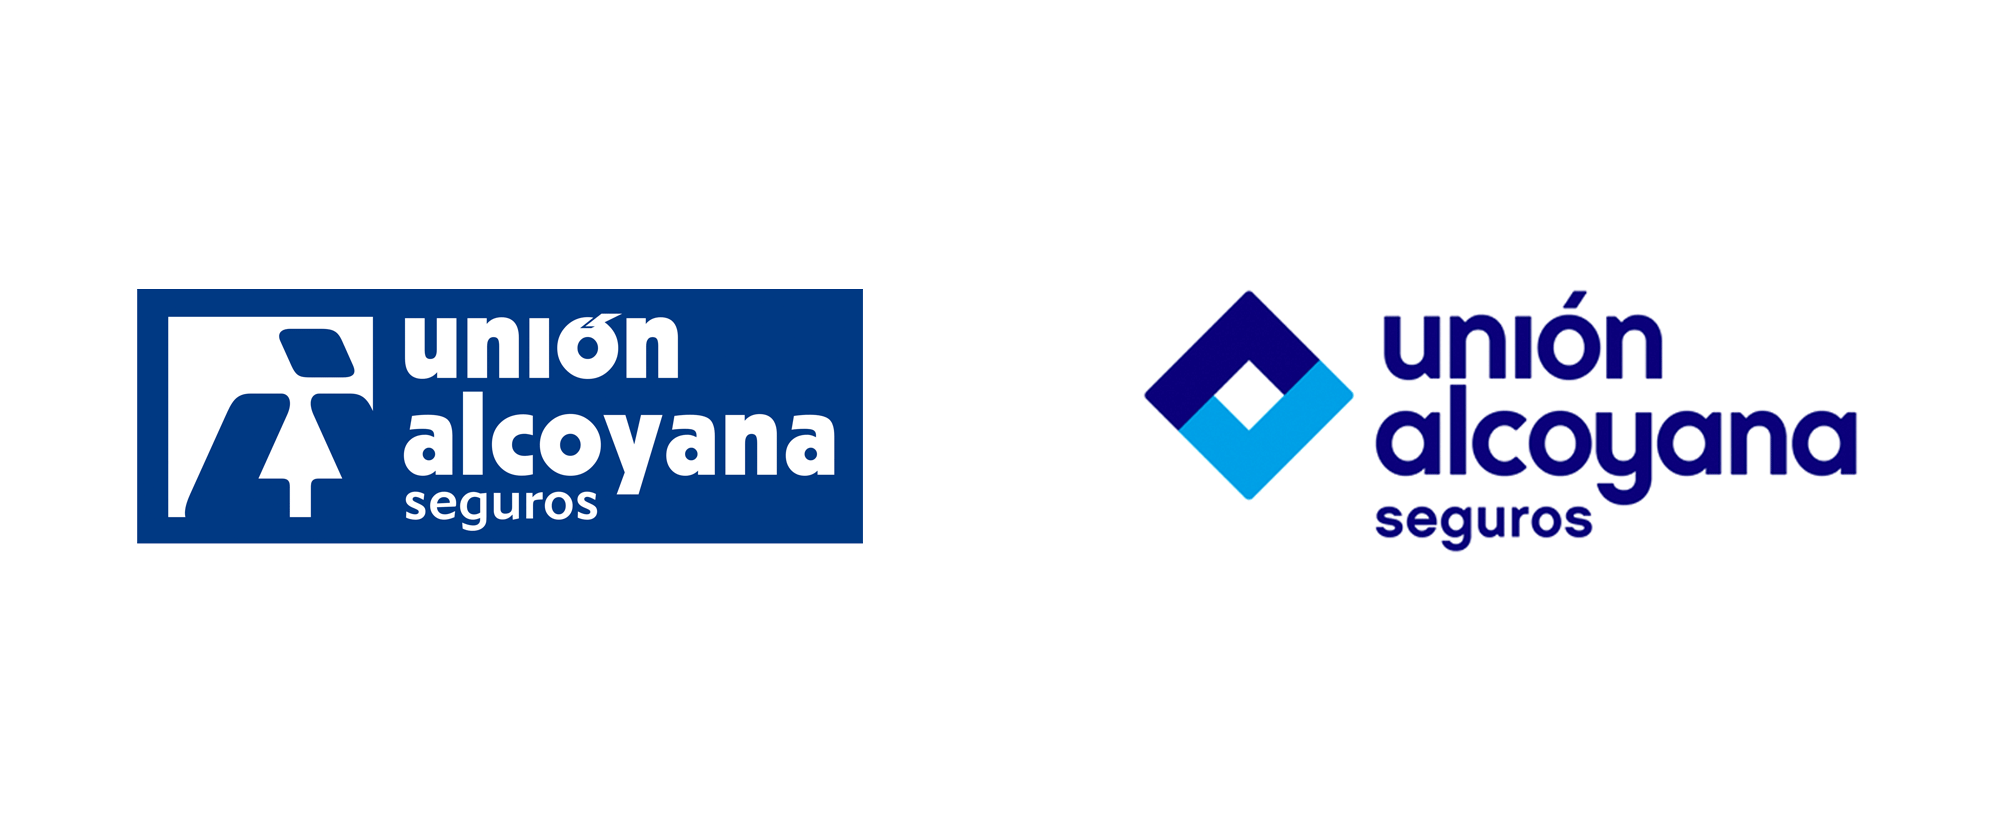 New Logo and Identity for Unión Alcoyana by Small